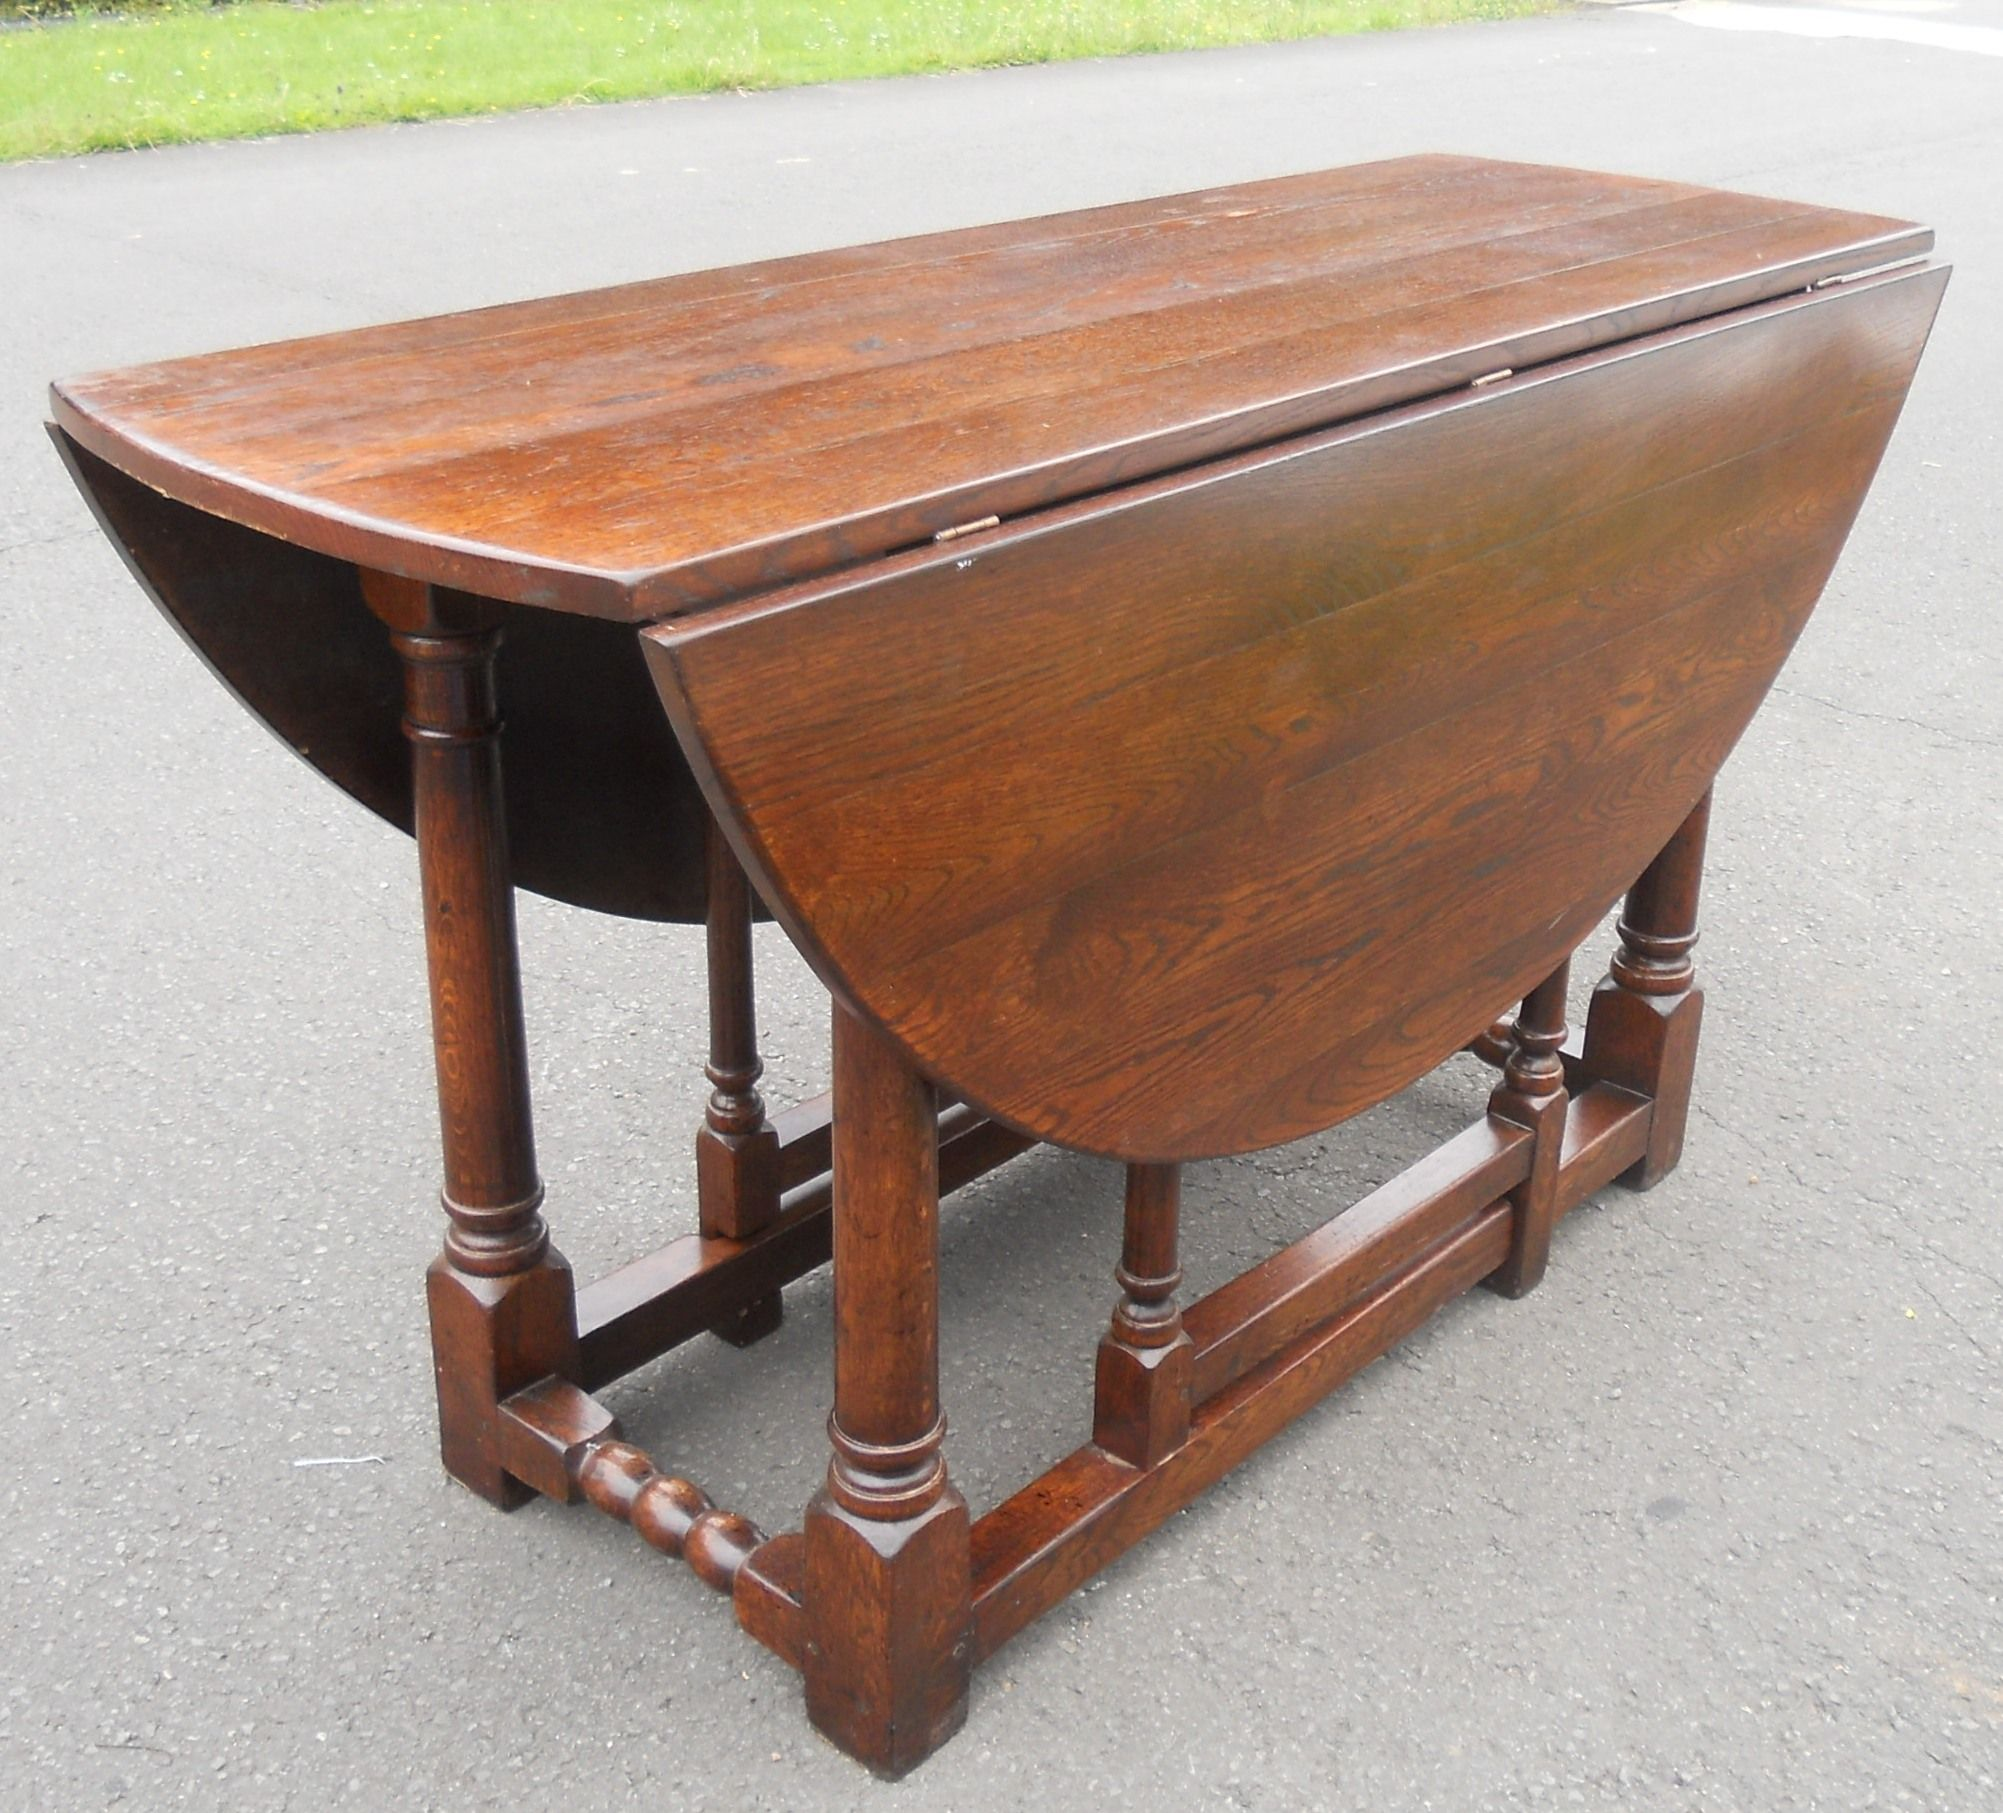 SOLD Large Oval Oak Gateleg Dining Table to Seat Six People : sold large oval oak gateleg dining table to seat six people 3 4783 p from www.harrisonantiquefurniture.co.uk size 2003 x 1813 jpeg 423kB